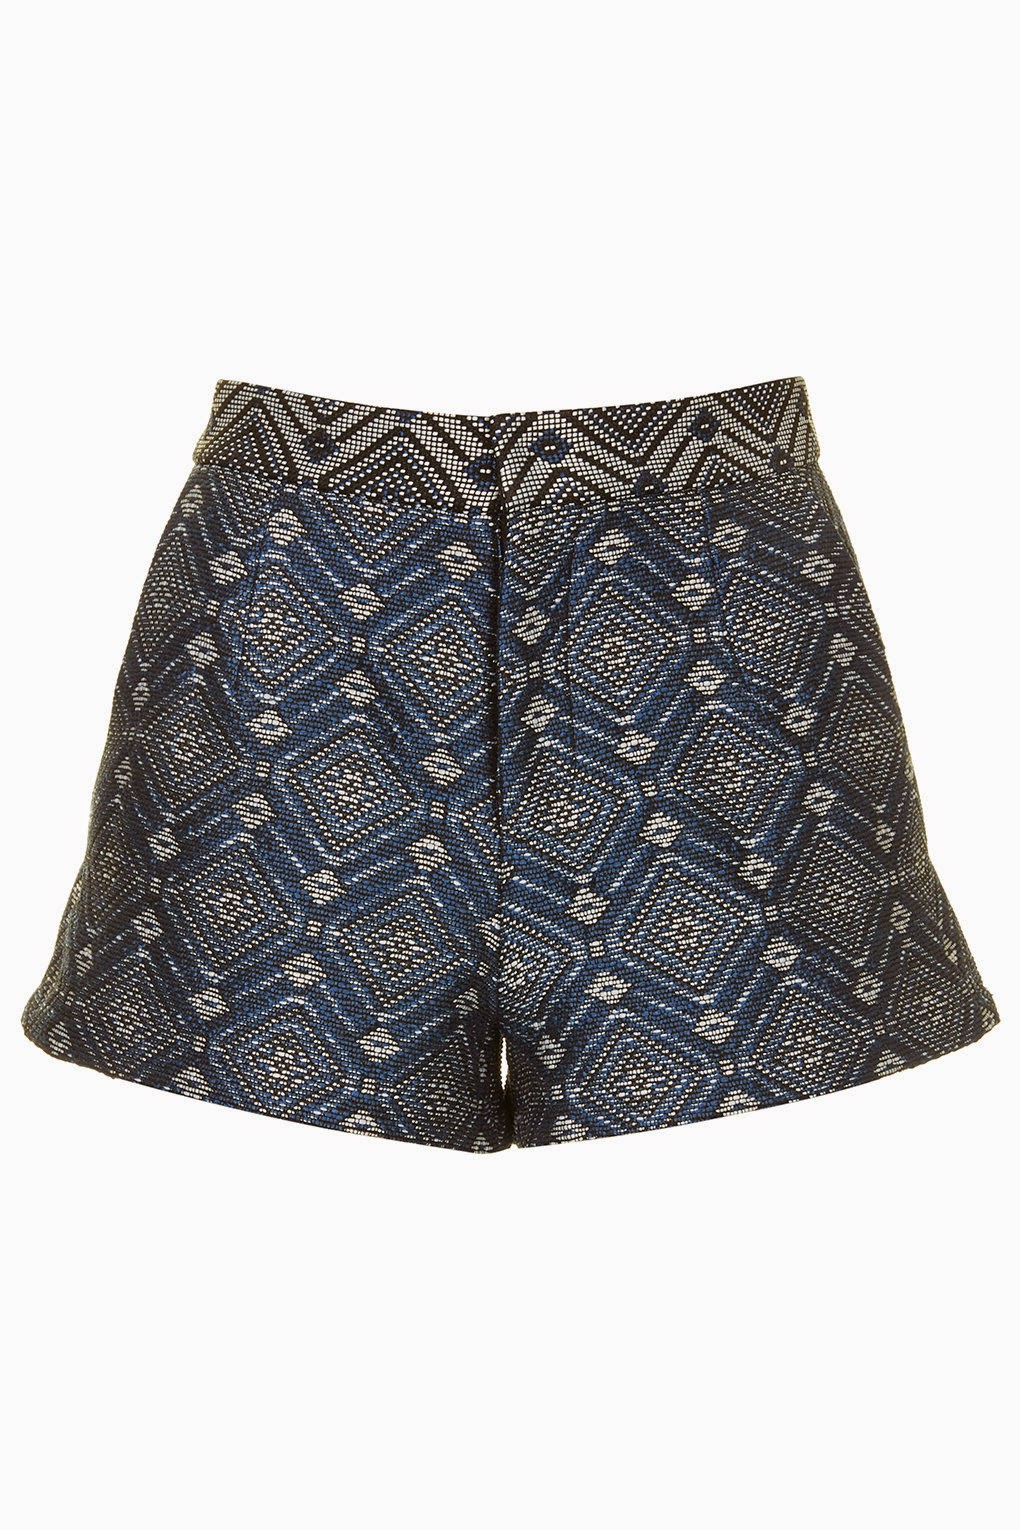 jacquard blue shorts,